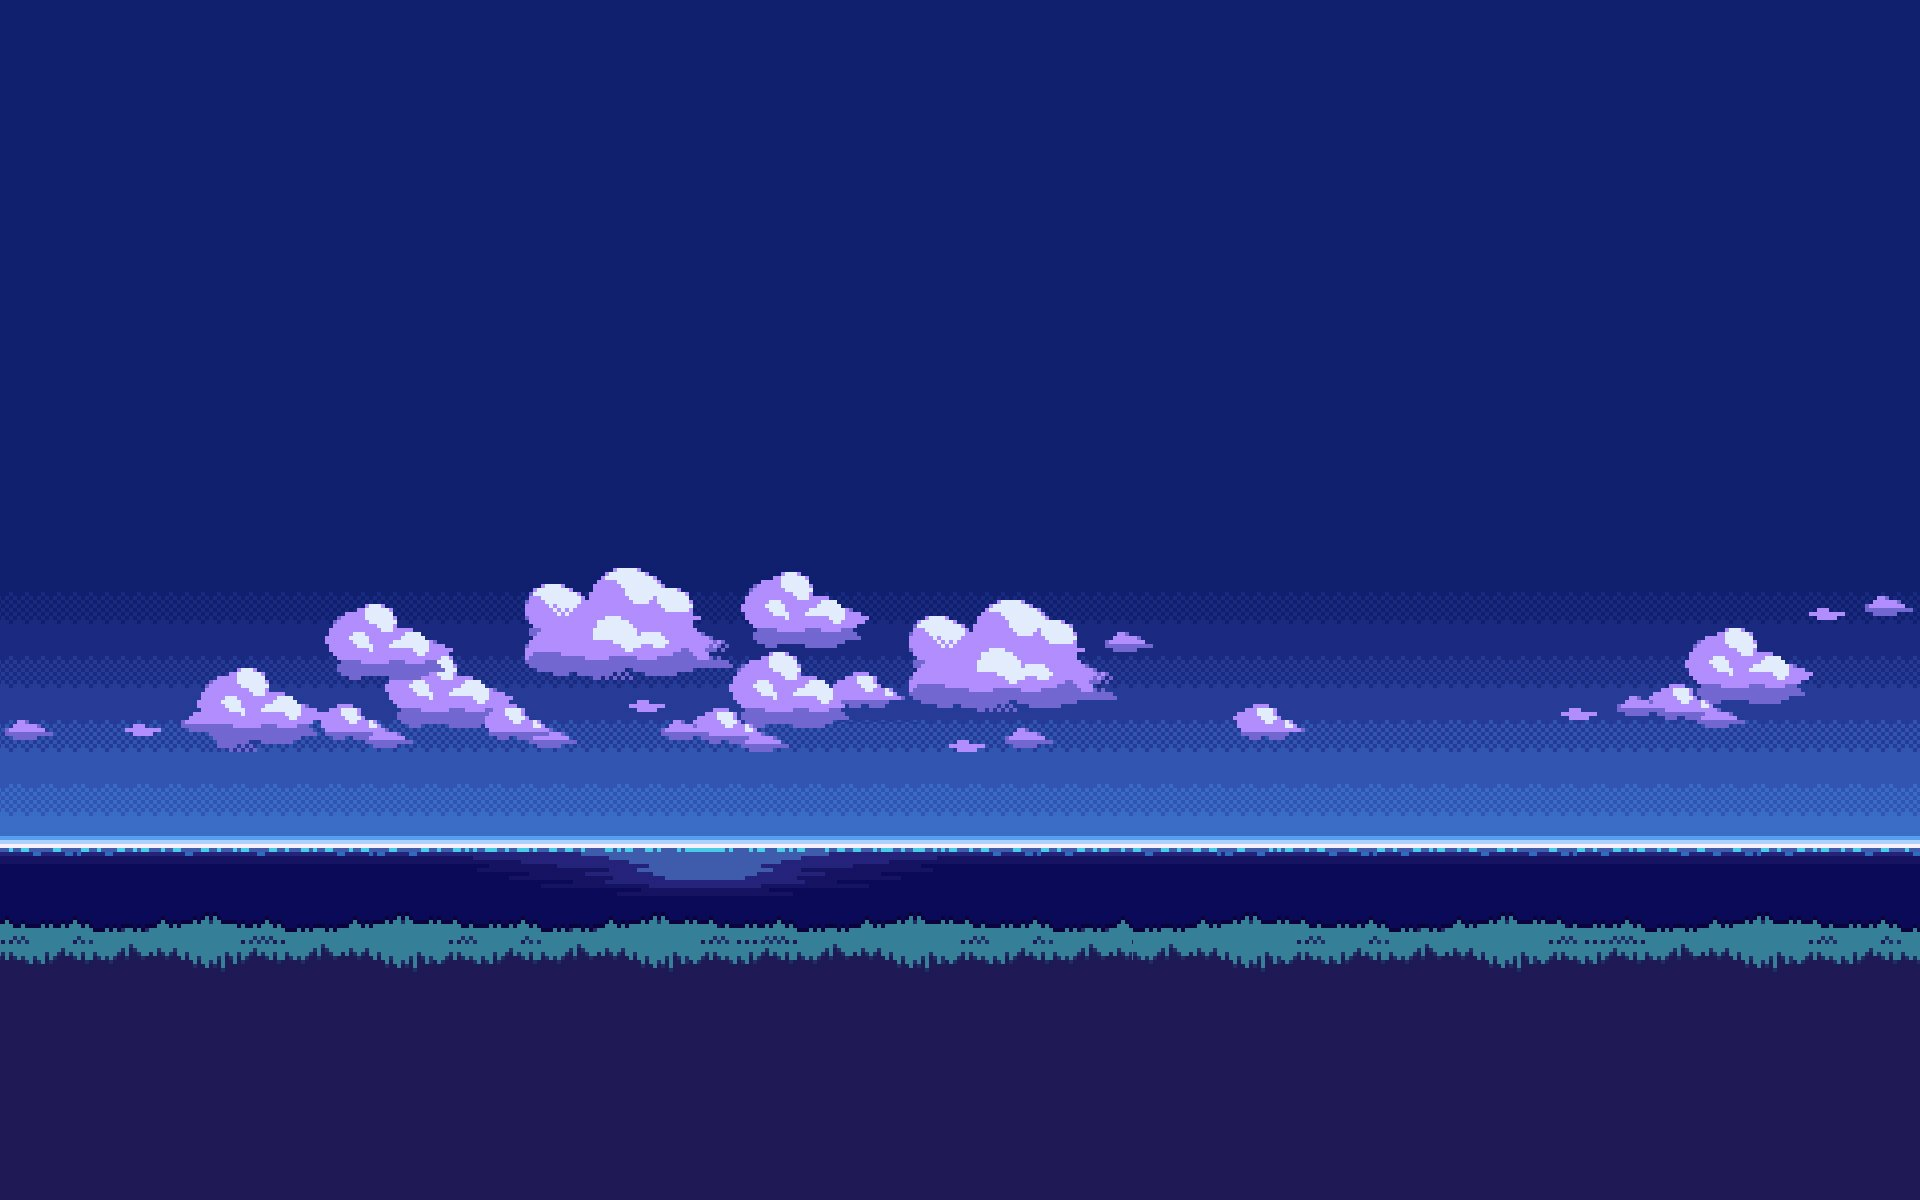 8 bit wallpapers you ll totally want for your android